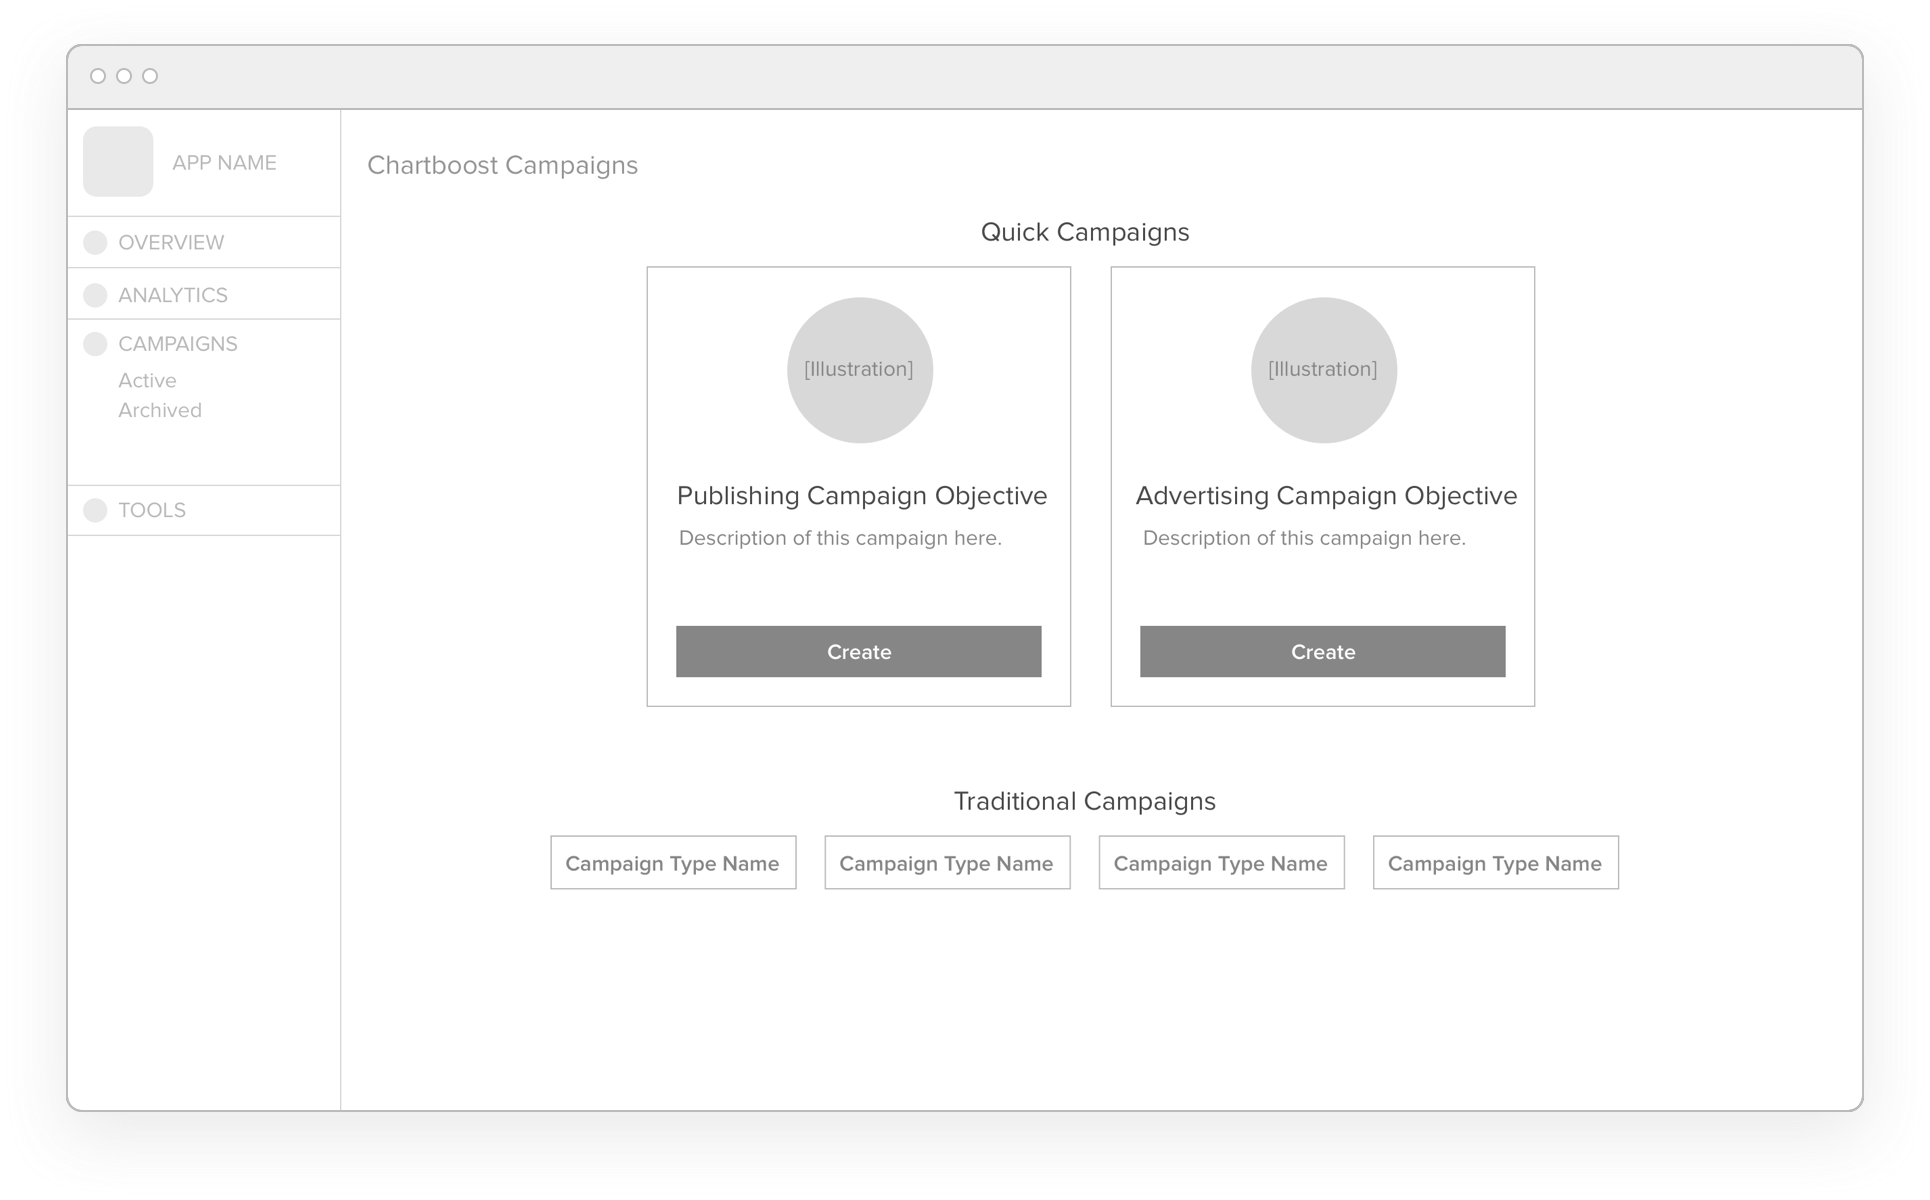 Wireframe of the Campaign Overview page; the top section favors quick creation of campaigns (useful for first-time users).